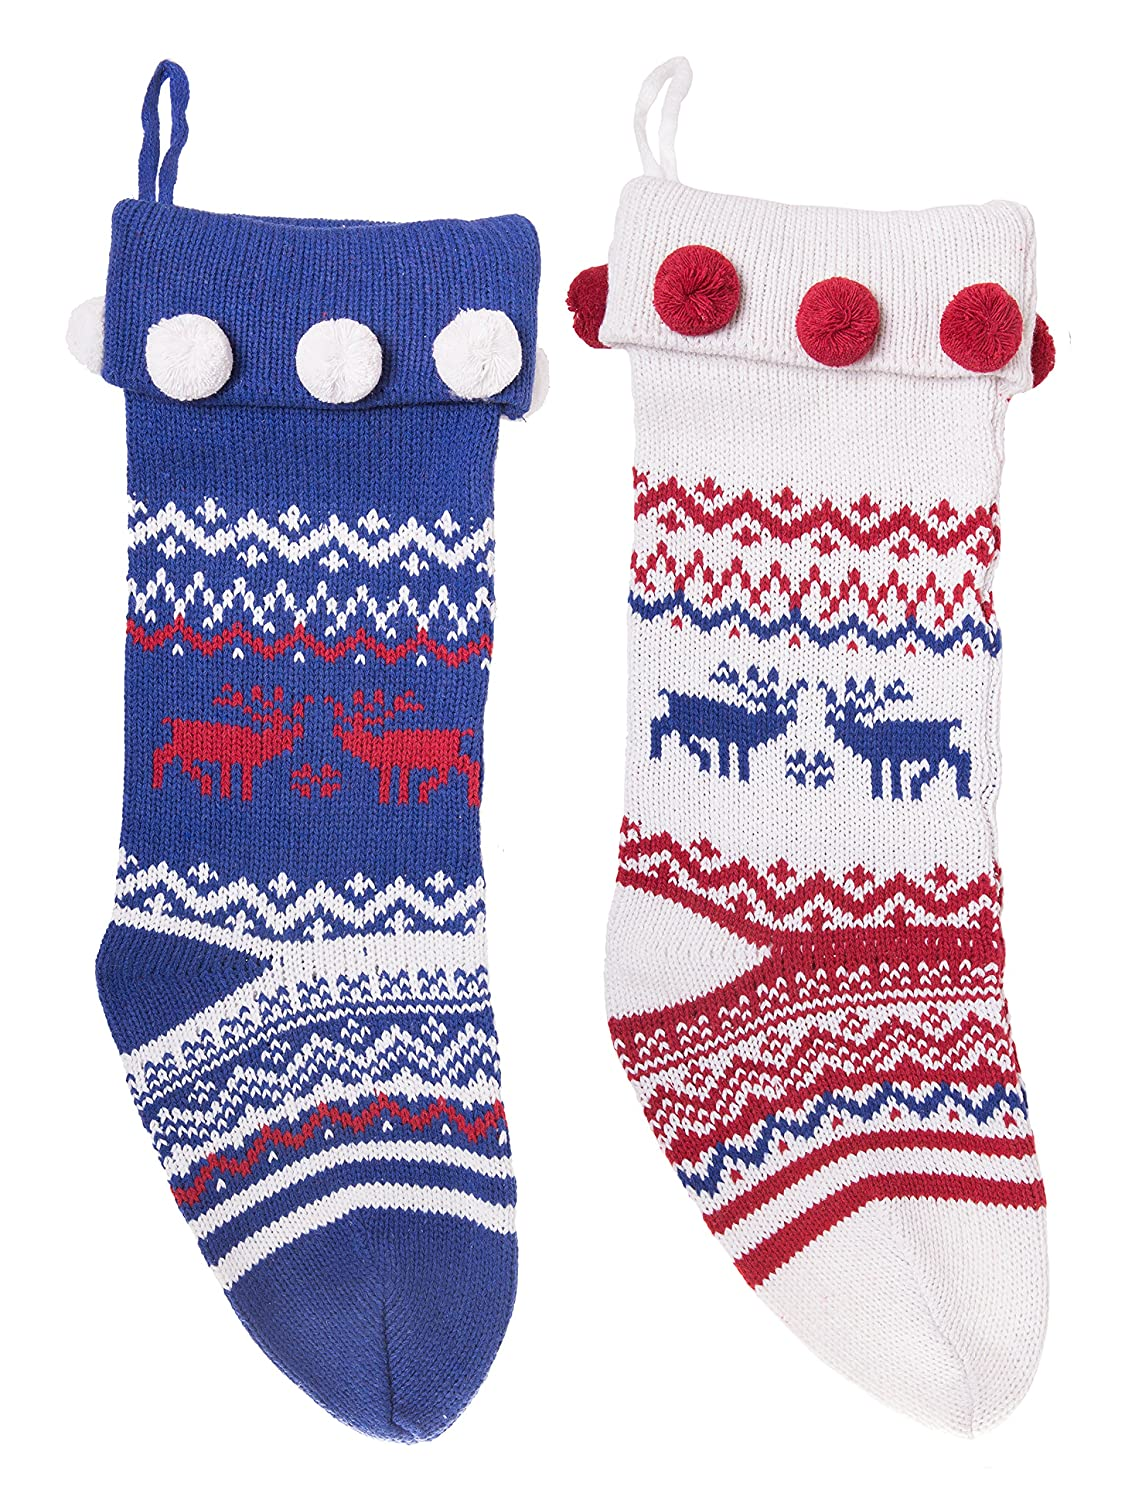 Knitted Christmas Stockings Traditional Holiday Season Santa Socks Classic Sweater Deer Pattern Scandinavian Decoration for Mantel & Staircase Gift Holder in Blue, White & Red Colors with - Set of 2 Red Co. 2-DEERWB